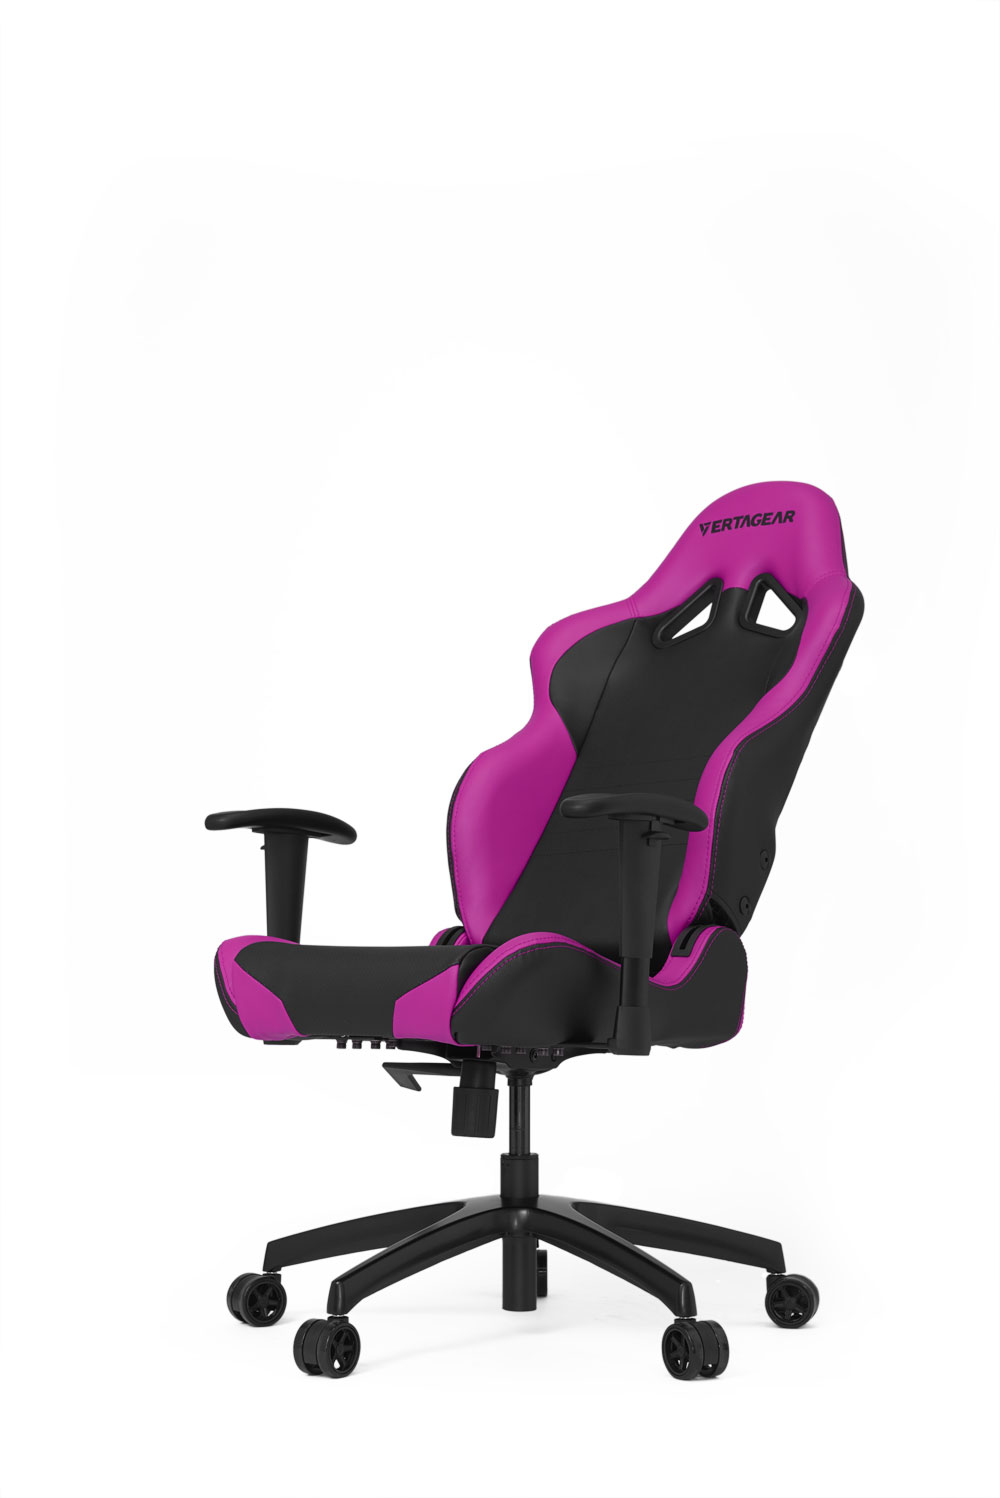 Vertagear SL2000 Gaming Chair Black / Pink